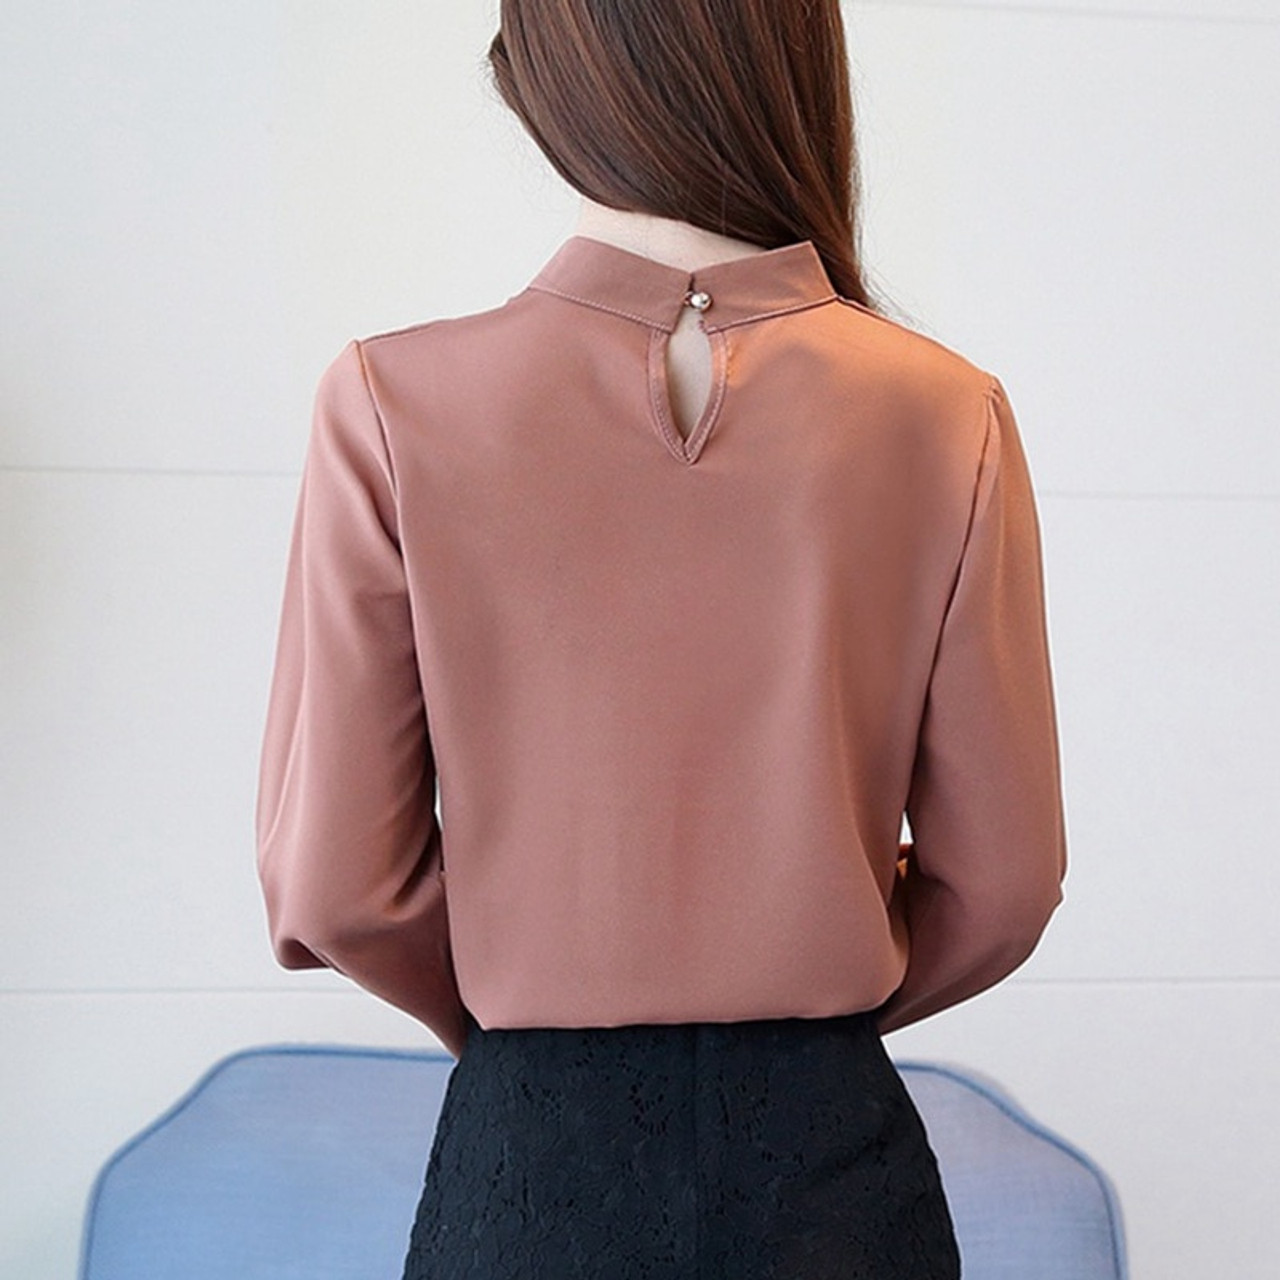 500d5e06611d0 ... 2018 Plus Size Chiffon Shirts Women Fashion Casual Long Sleeve Blouse  Elegant Women s Blusas Office Lady ...